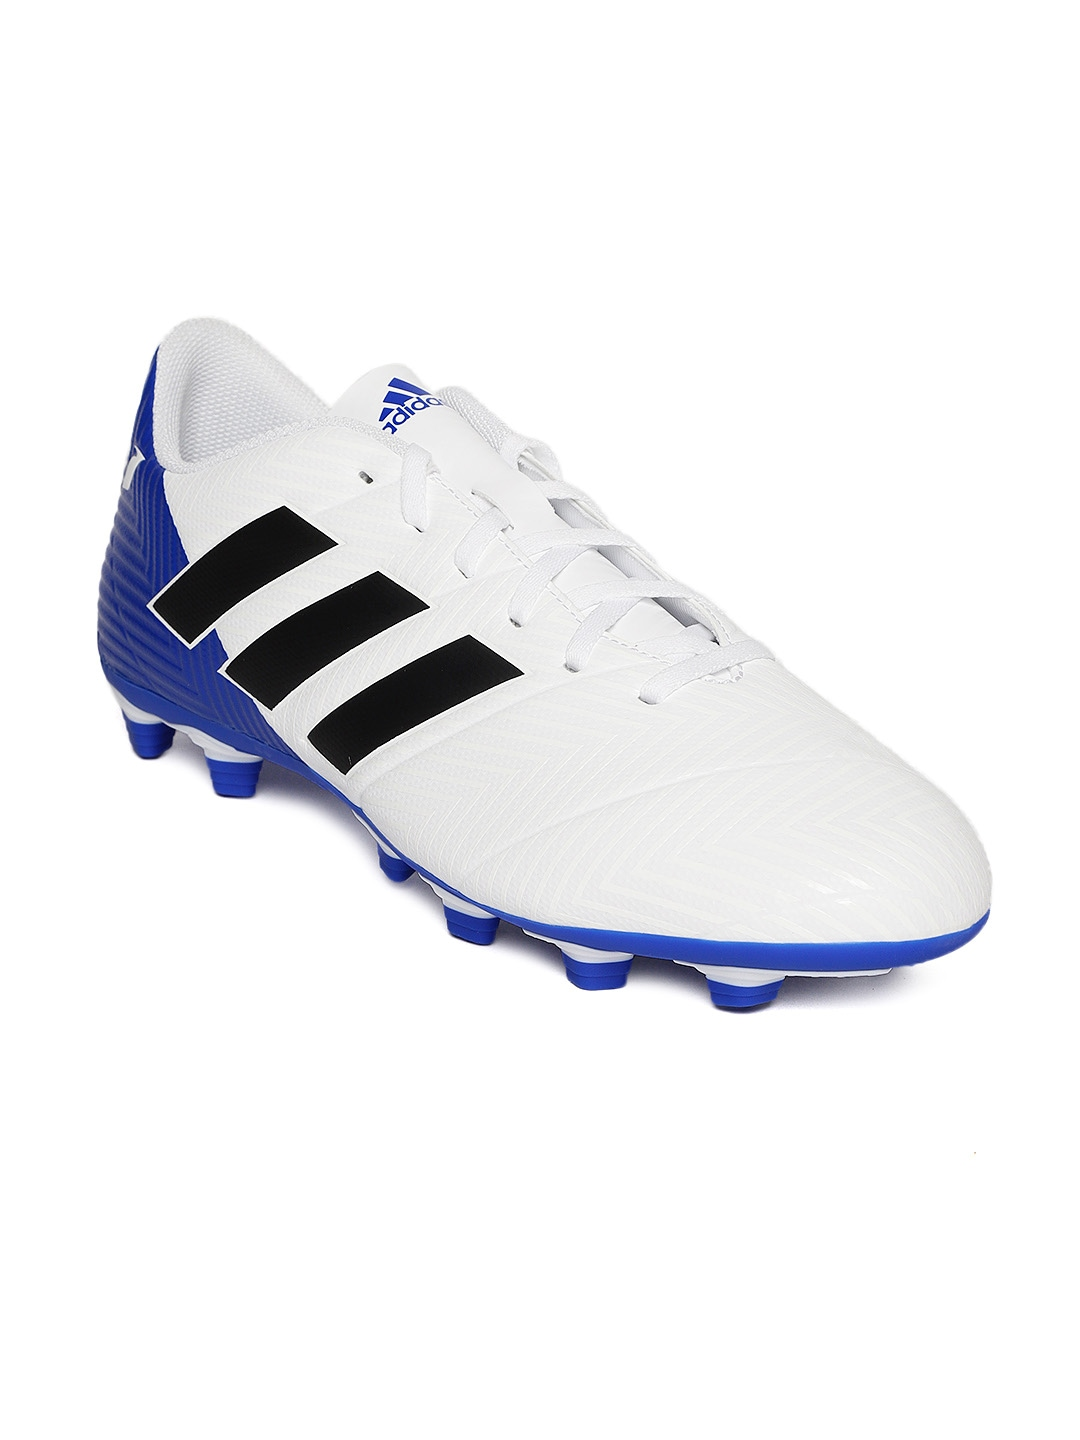 fe78f92b095 Adidas Messi - Buy Adidas Messi online in India